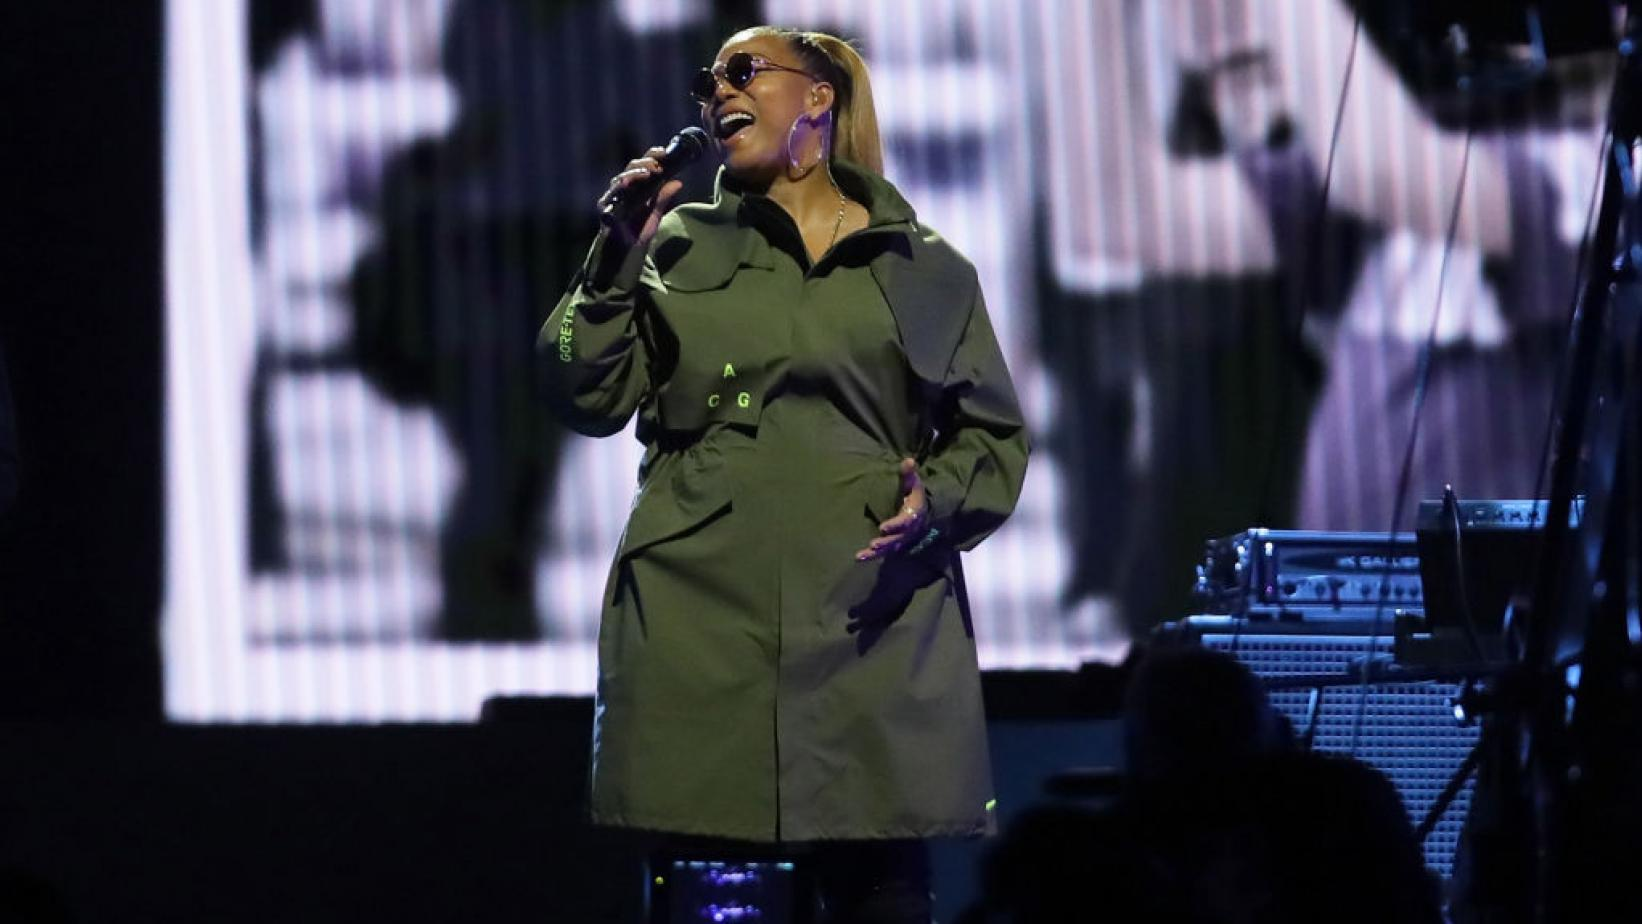 Queen Latifah performs during the 2020 NBA All-Star Weekend